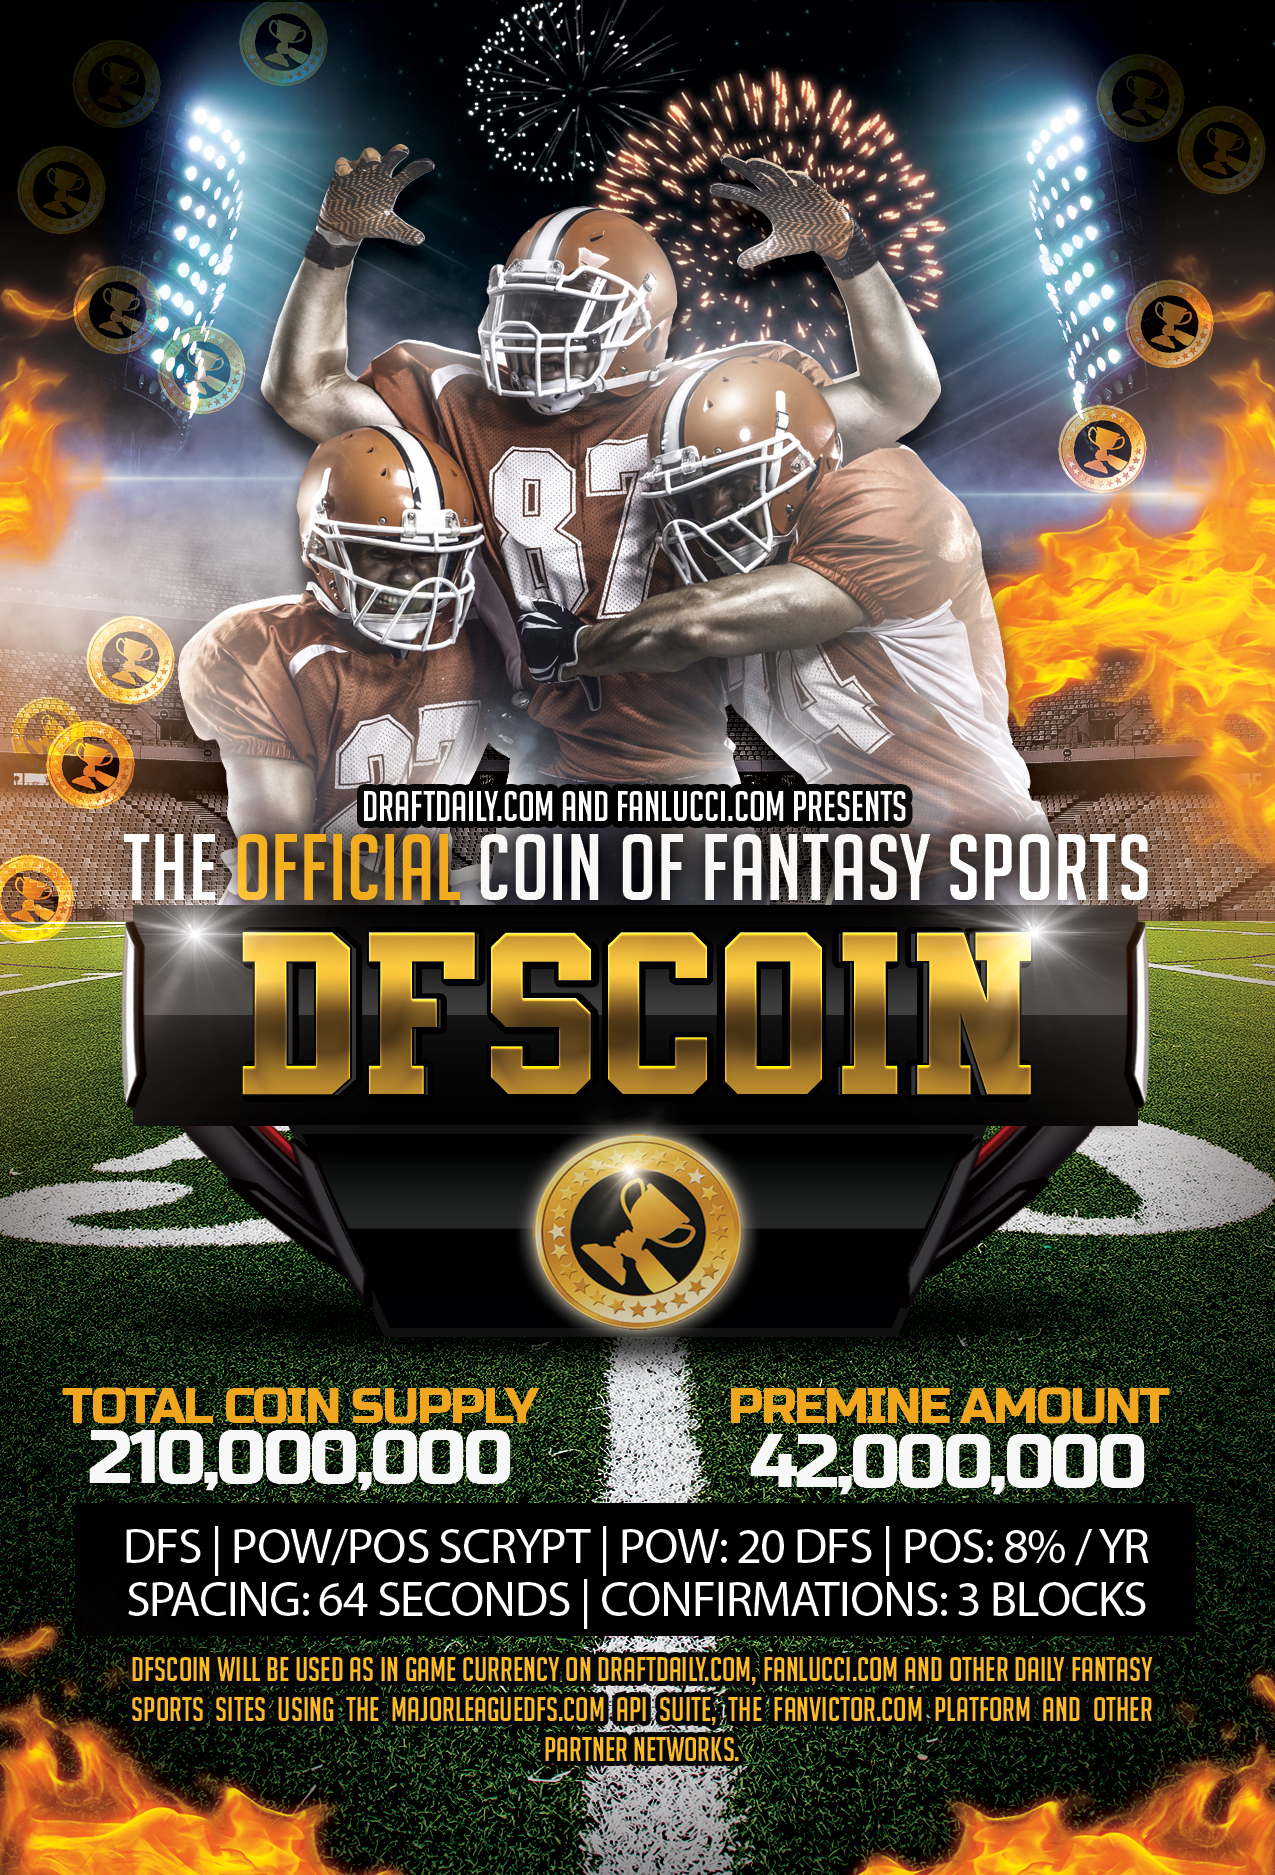 DFSCoin is the official crypto coin for fantasy sports